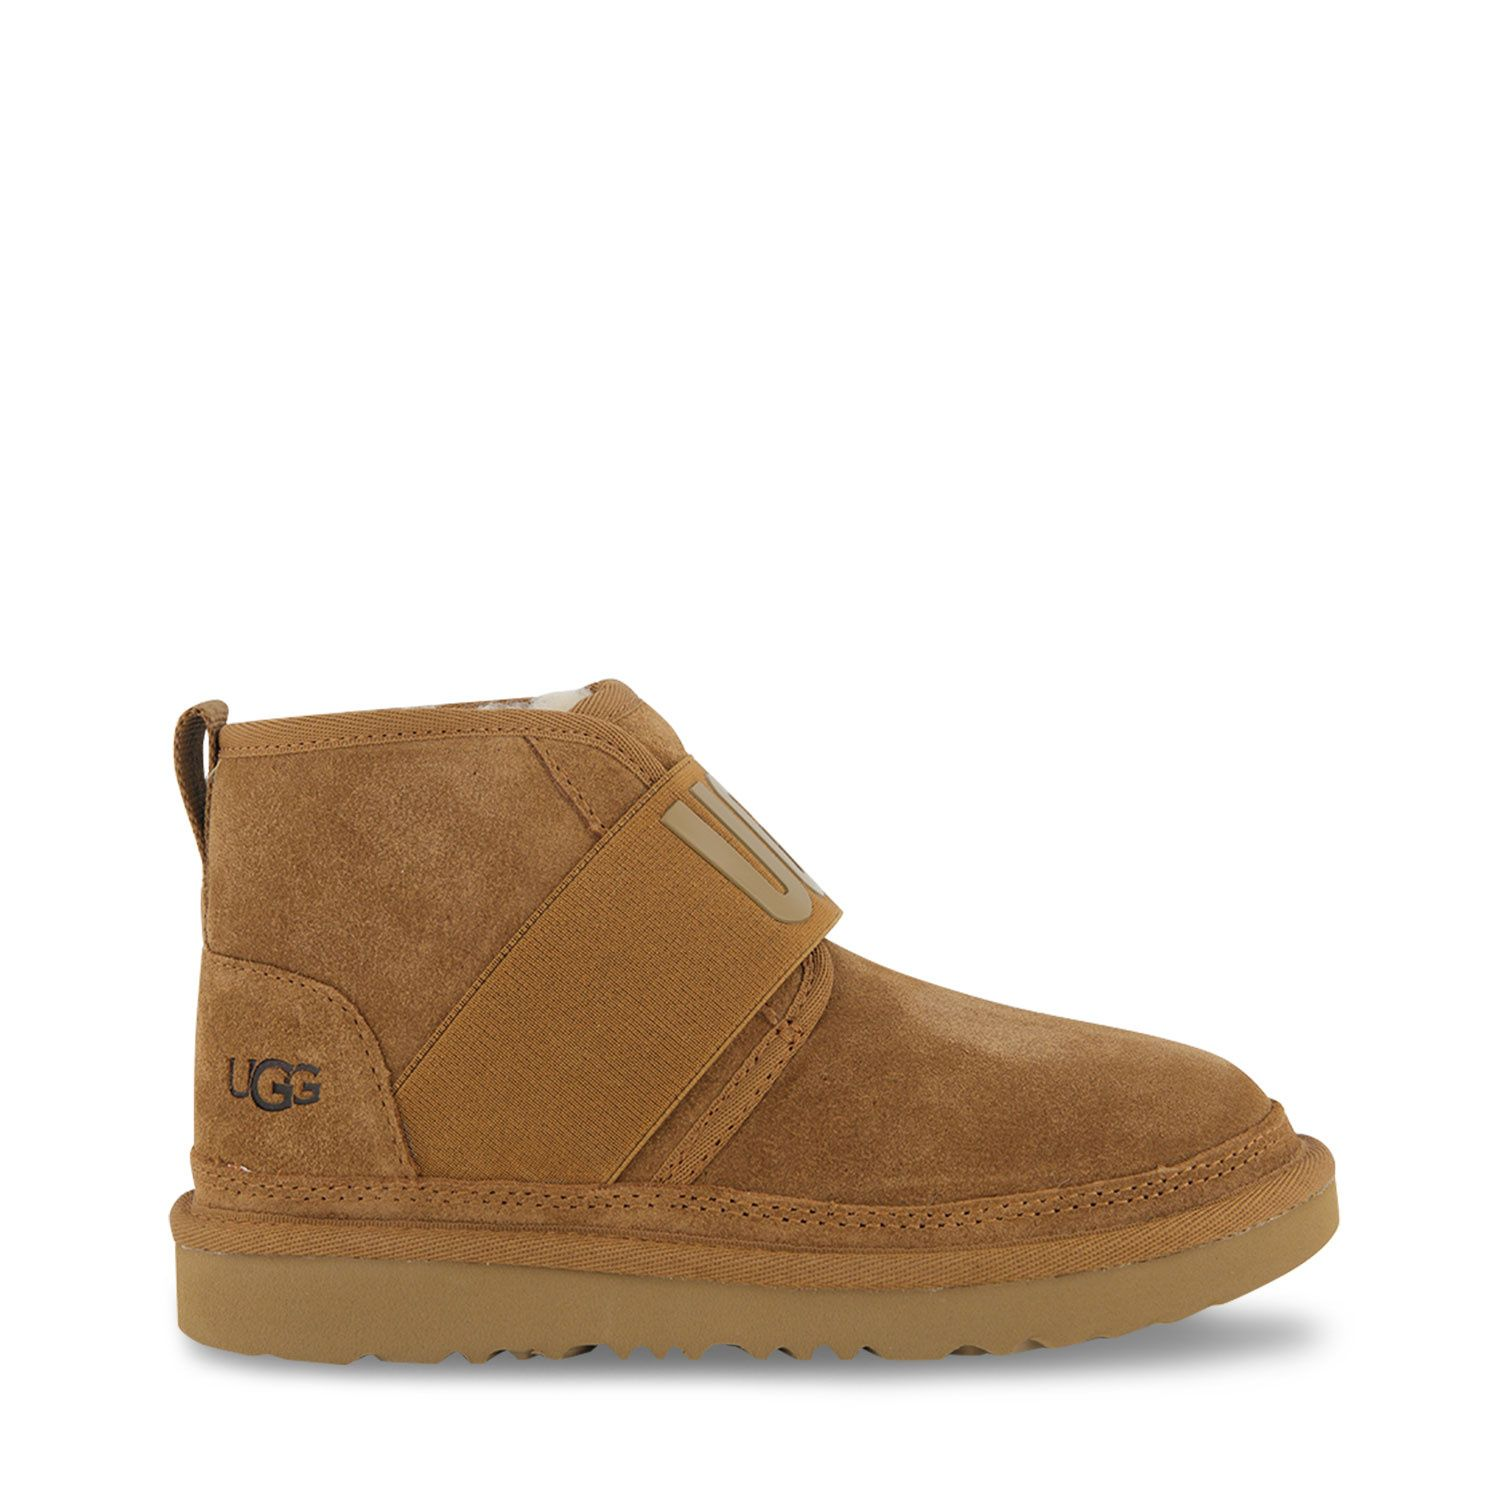 Picture of Ugg 1110703 kids snowboots camel